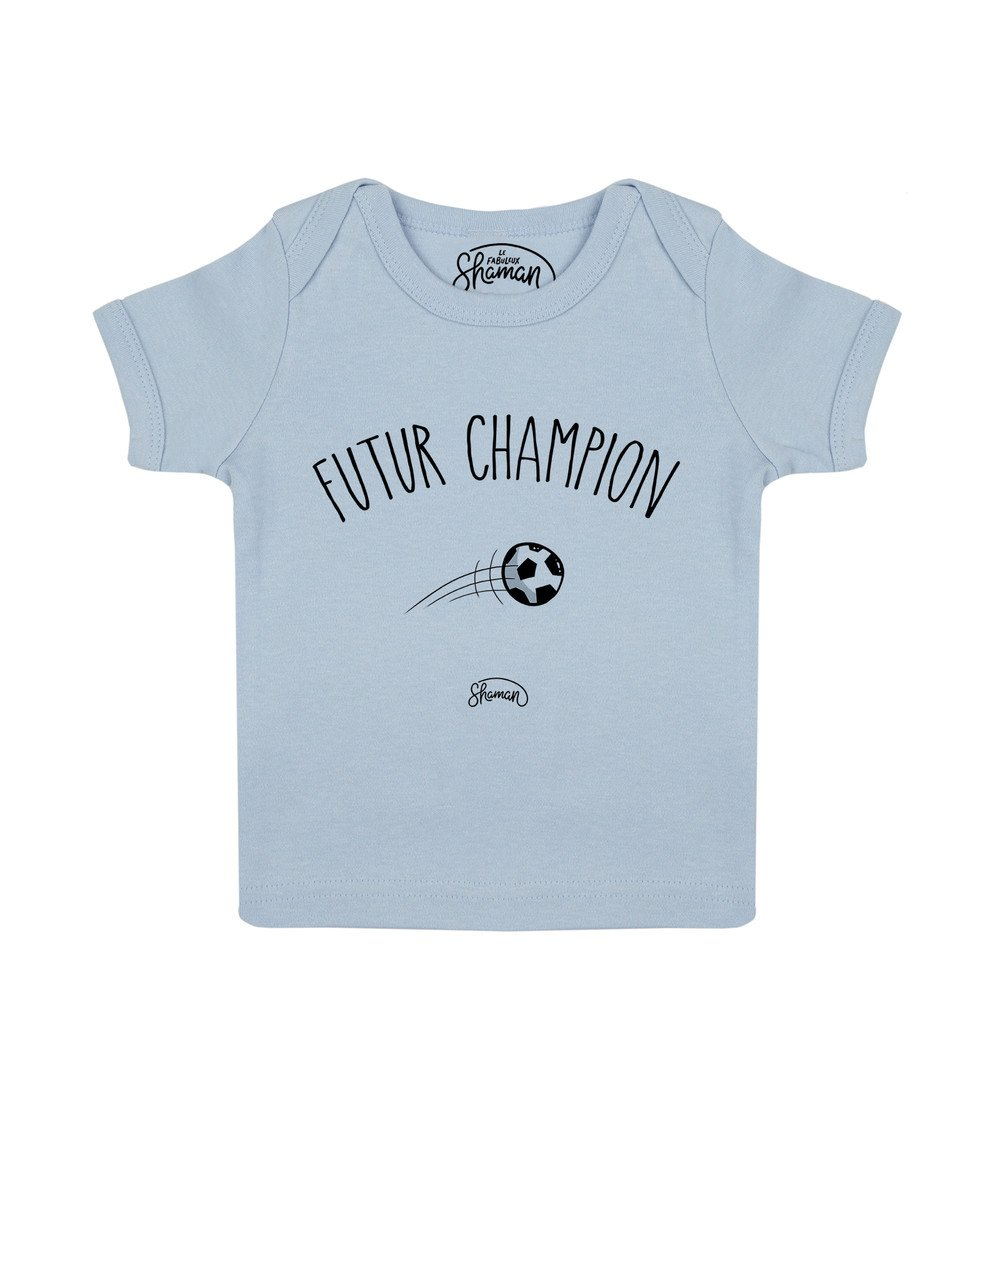 Tee shirt Futur champion